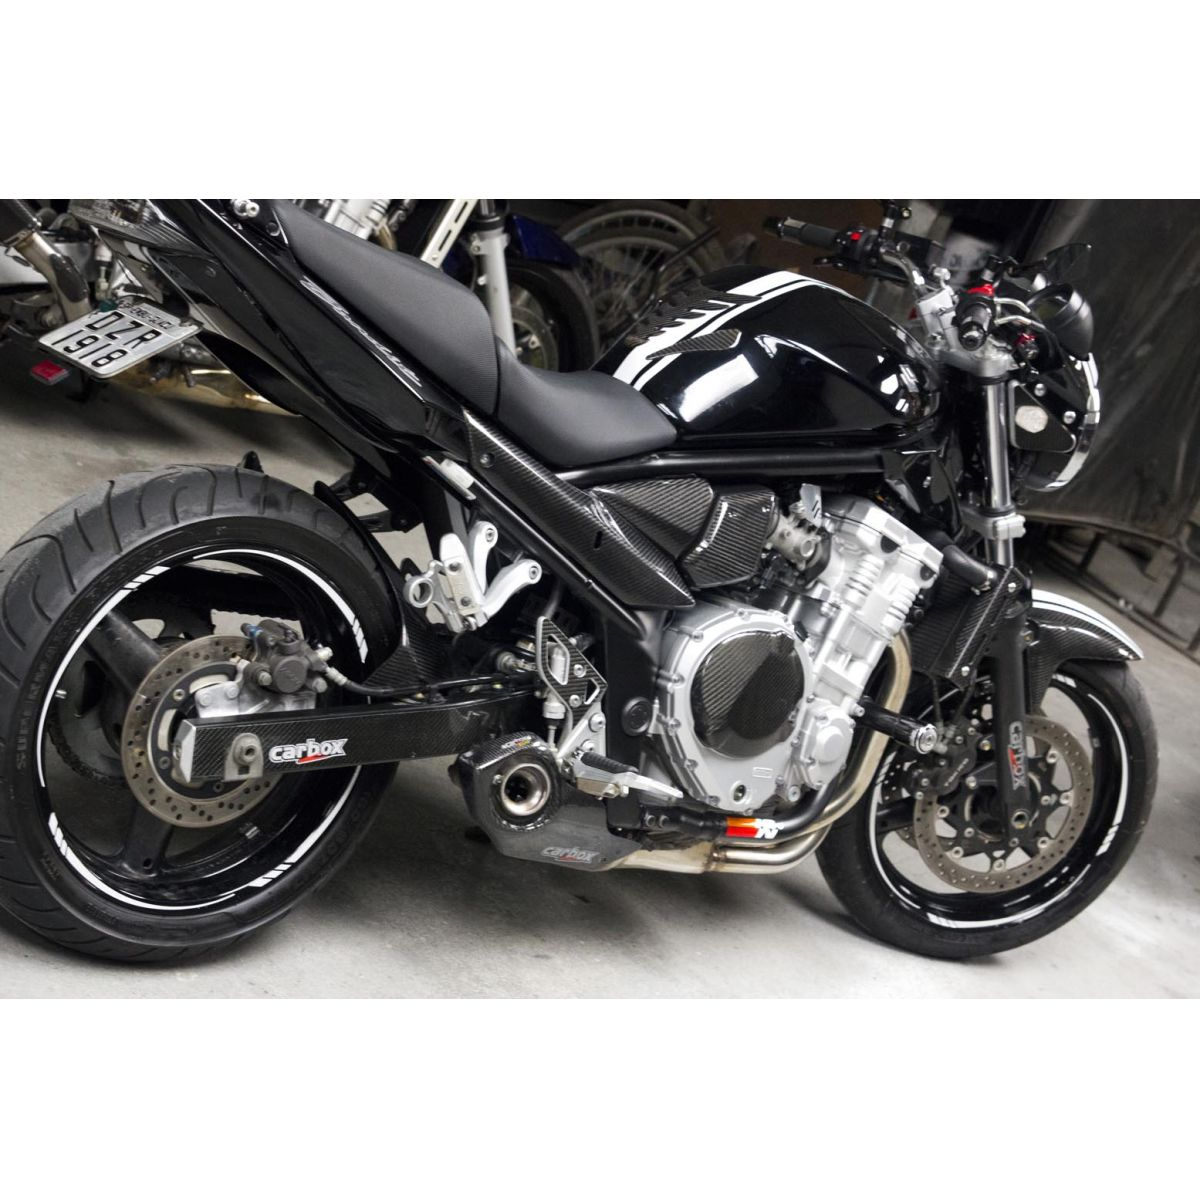 Ponteira Escape No Muffler Carbon - Bandit 650/1250